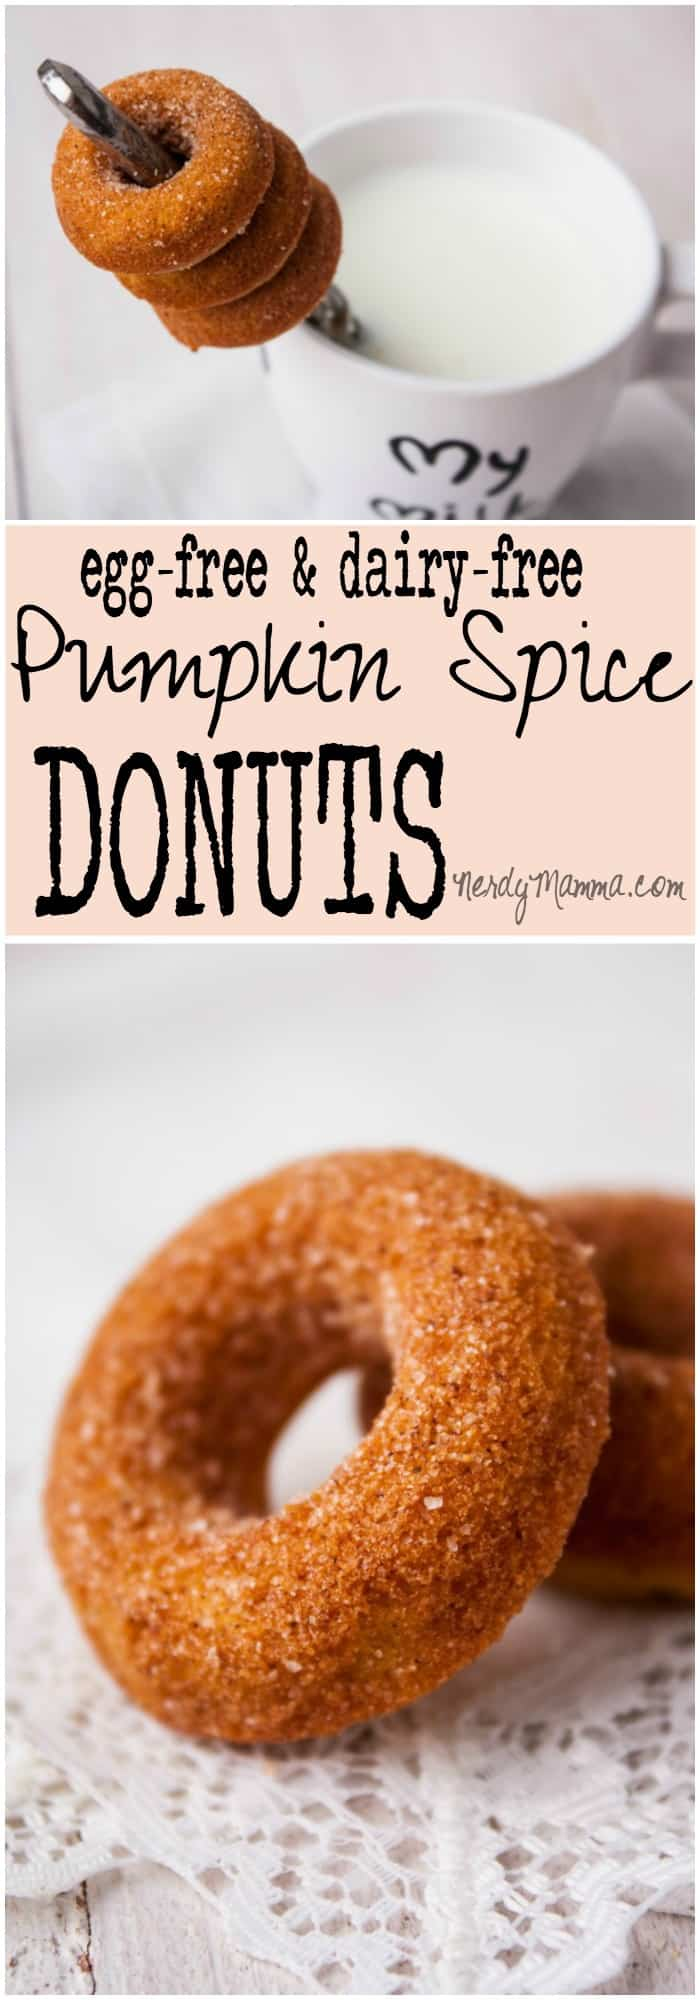 My kids gobbled-up ALL of these ridiculously yummy pumpkin donuts! They were so awesome!